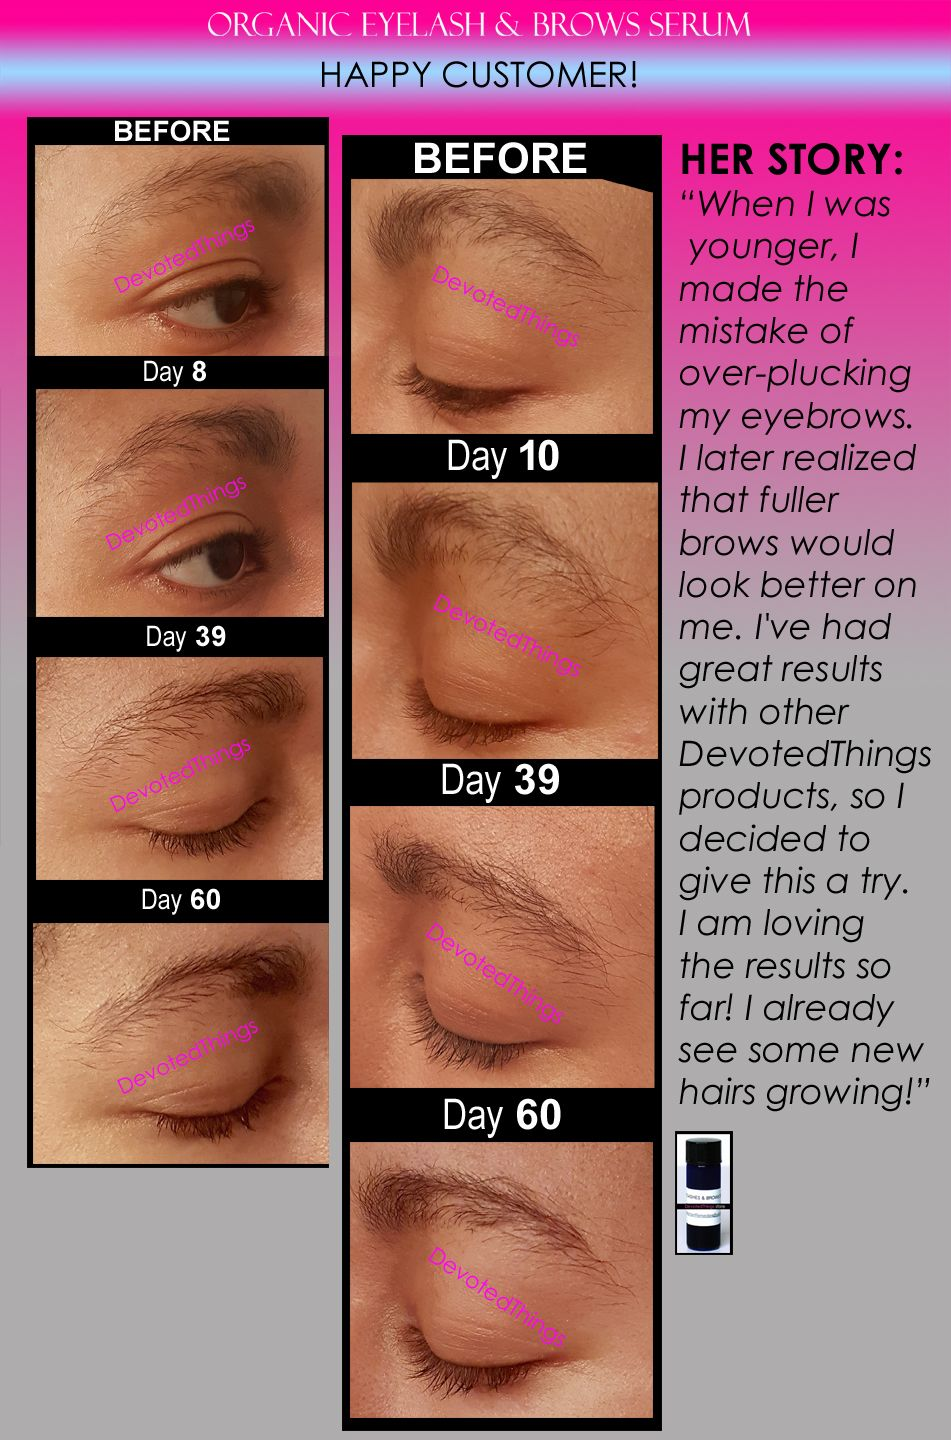 Before and After pictures for the Organic Eyelash & Brows ...